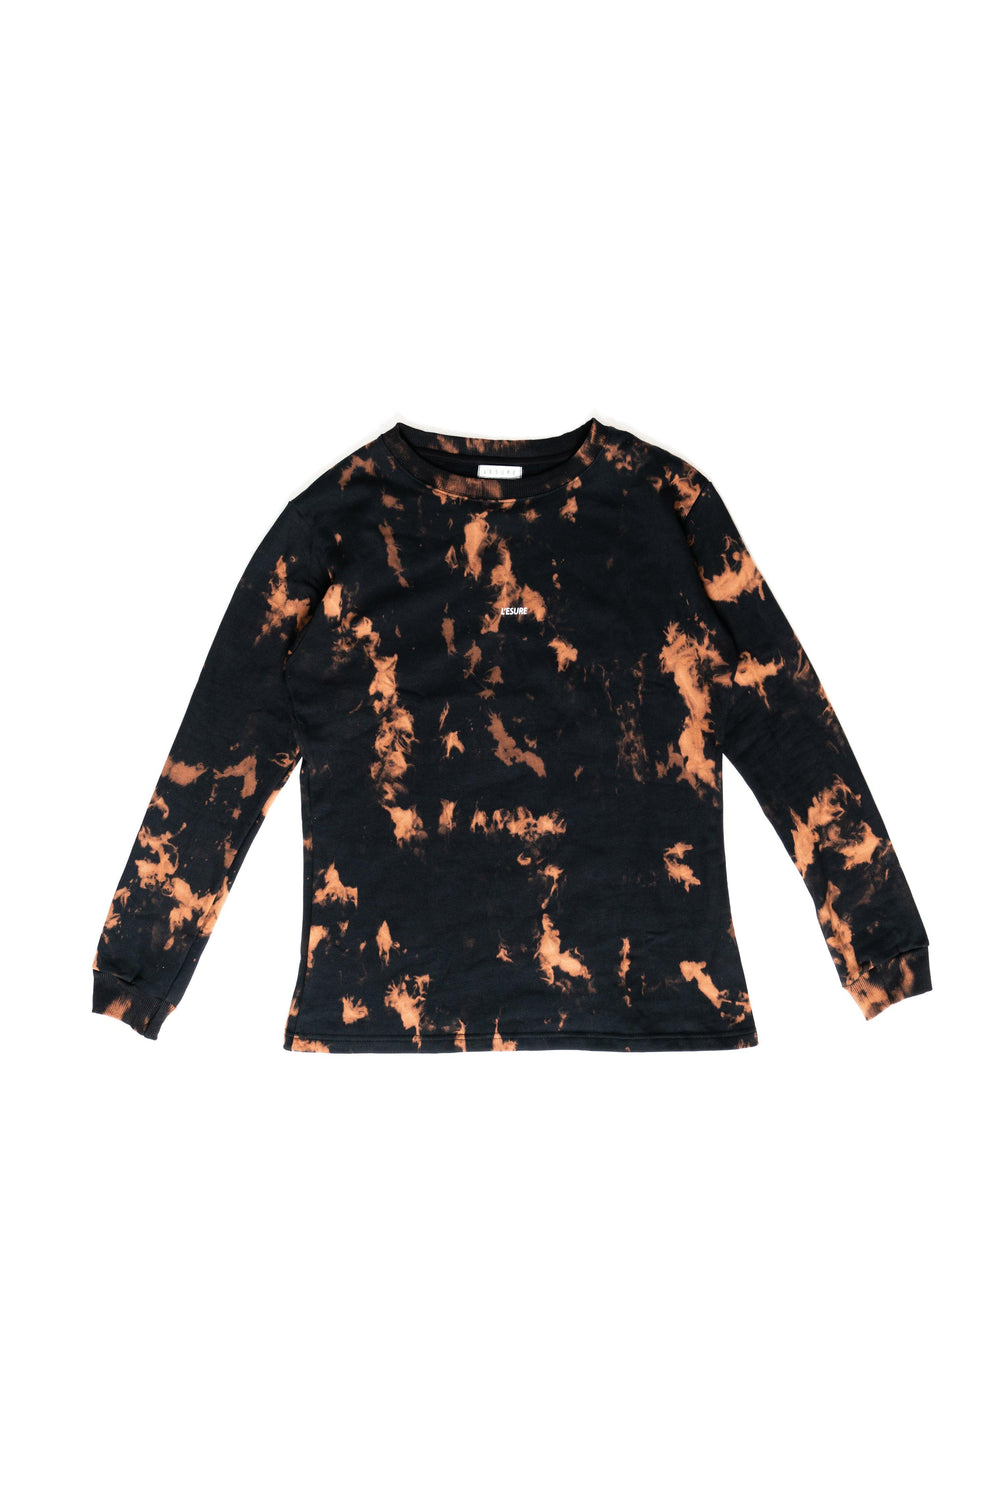 Terry Fire Sweat - L'ESURE STUDIO